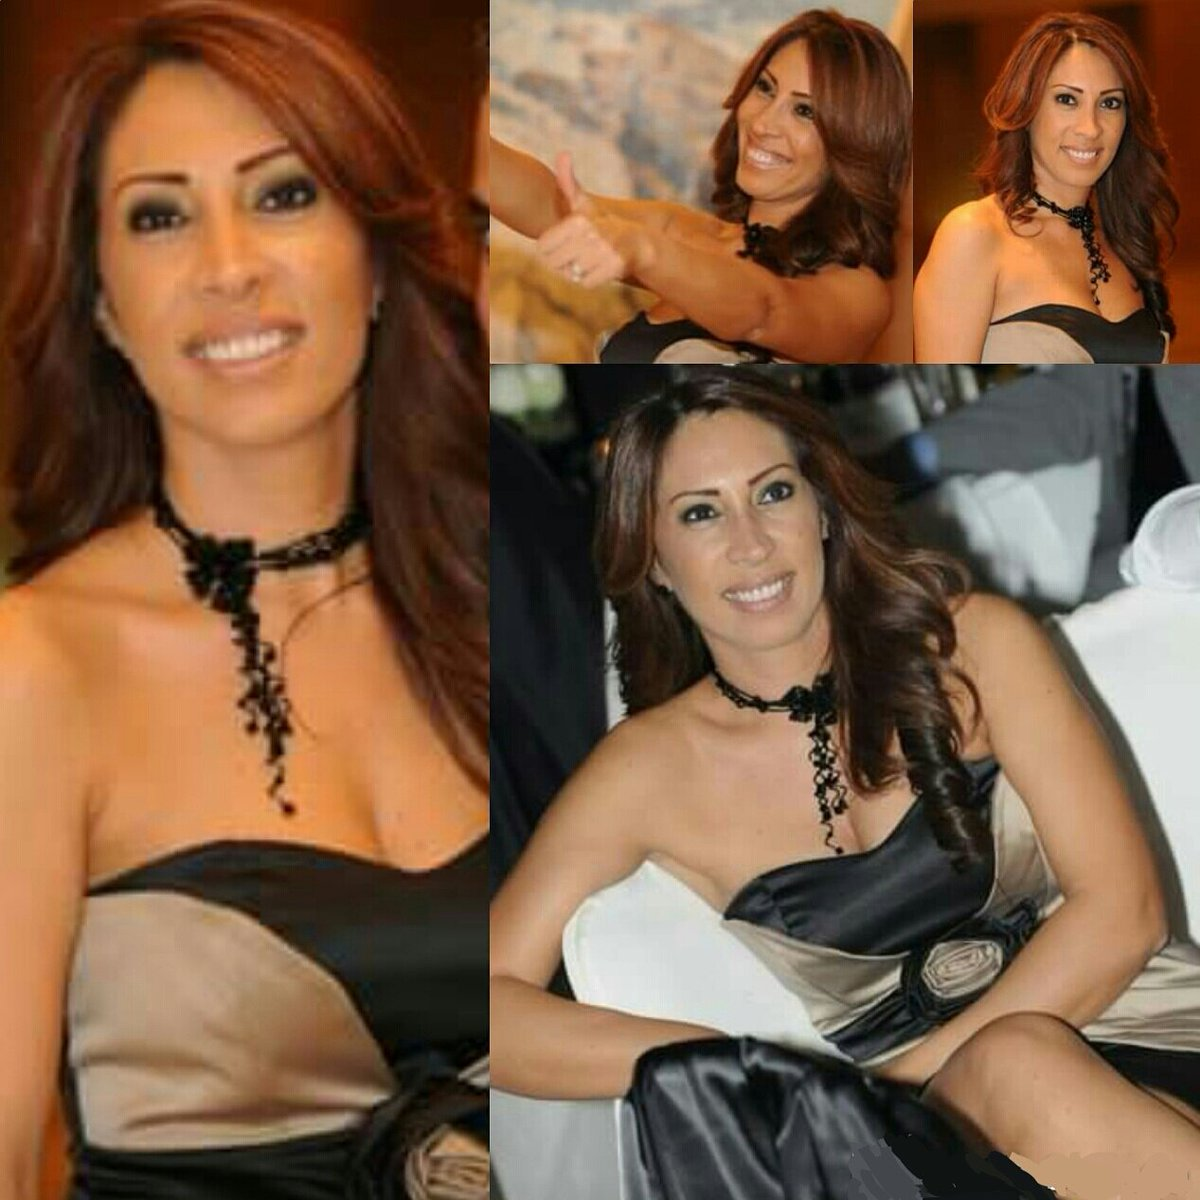 #throwback #1styearanniversary #Banquet of Cuisine Santé International Lebanon, first experience #event #planning in 2010 #nena #success #pr<br>http://pic.twitter.com/cBaALTYoEk